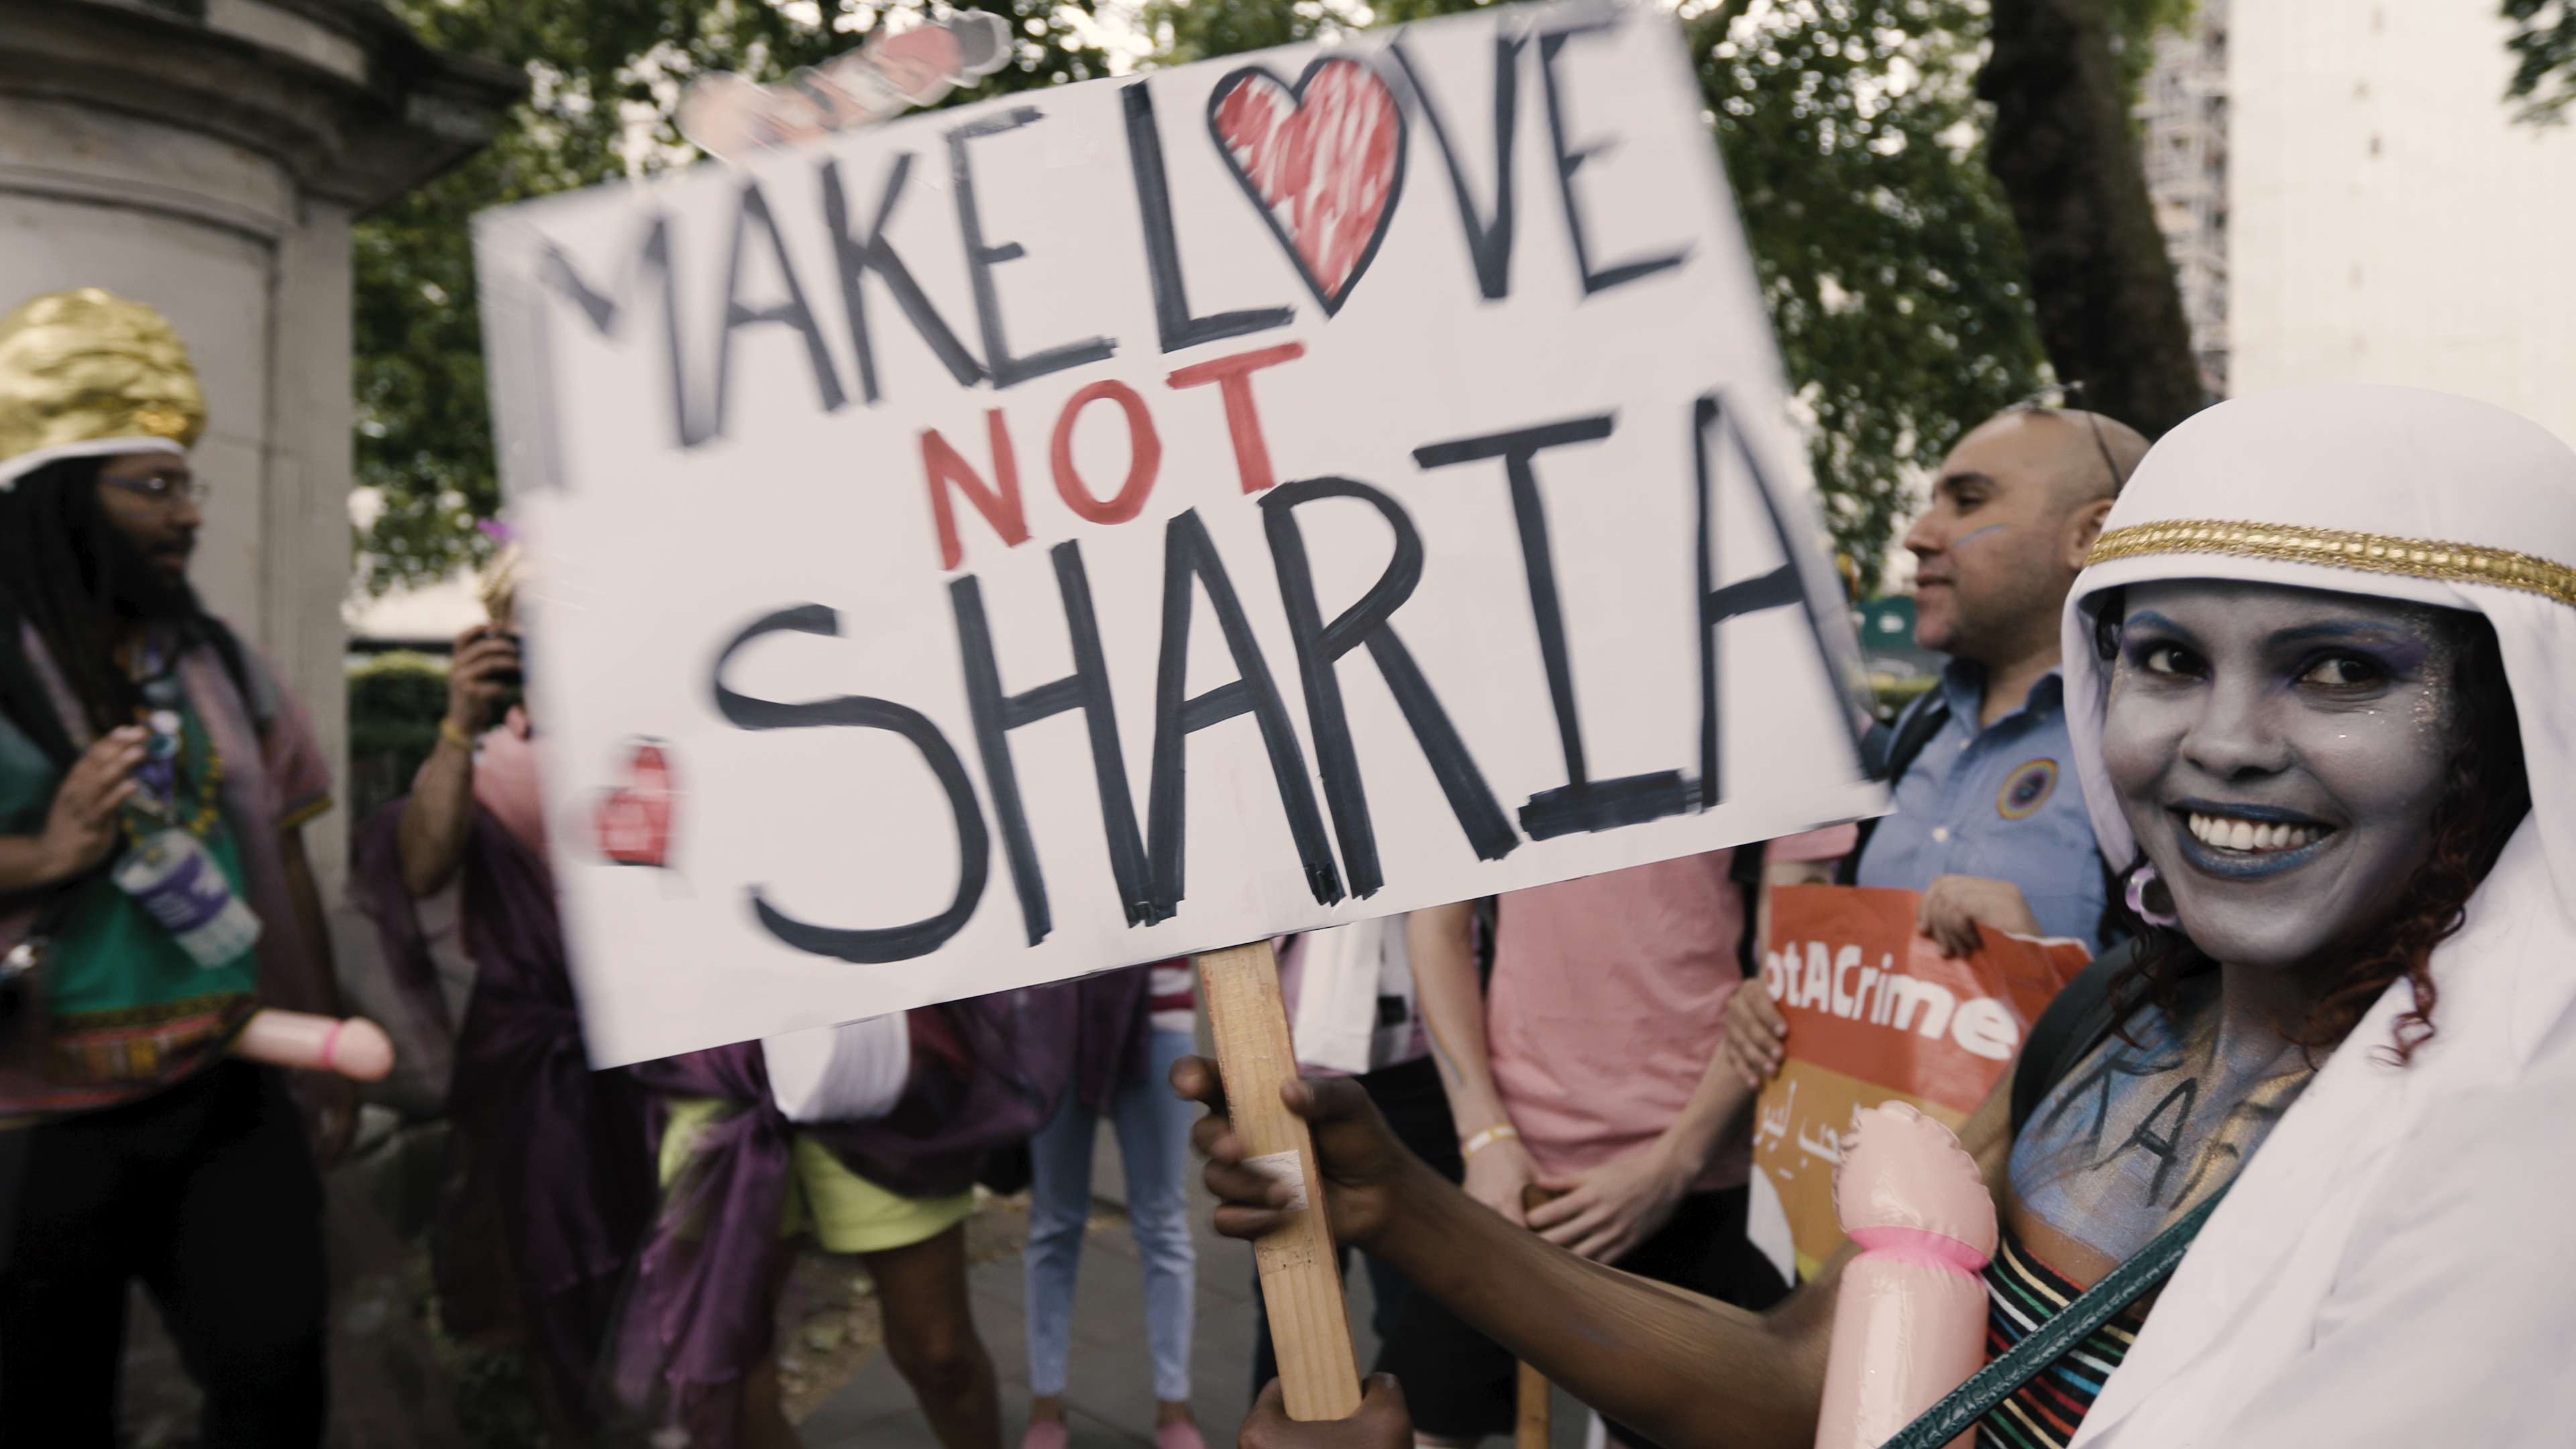 London Pride photo with banner make love not sharia